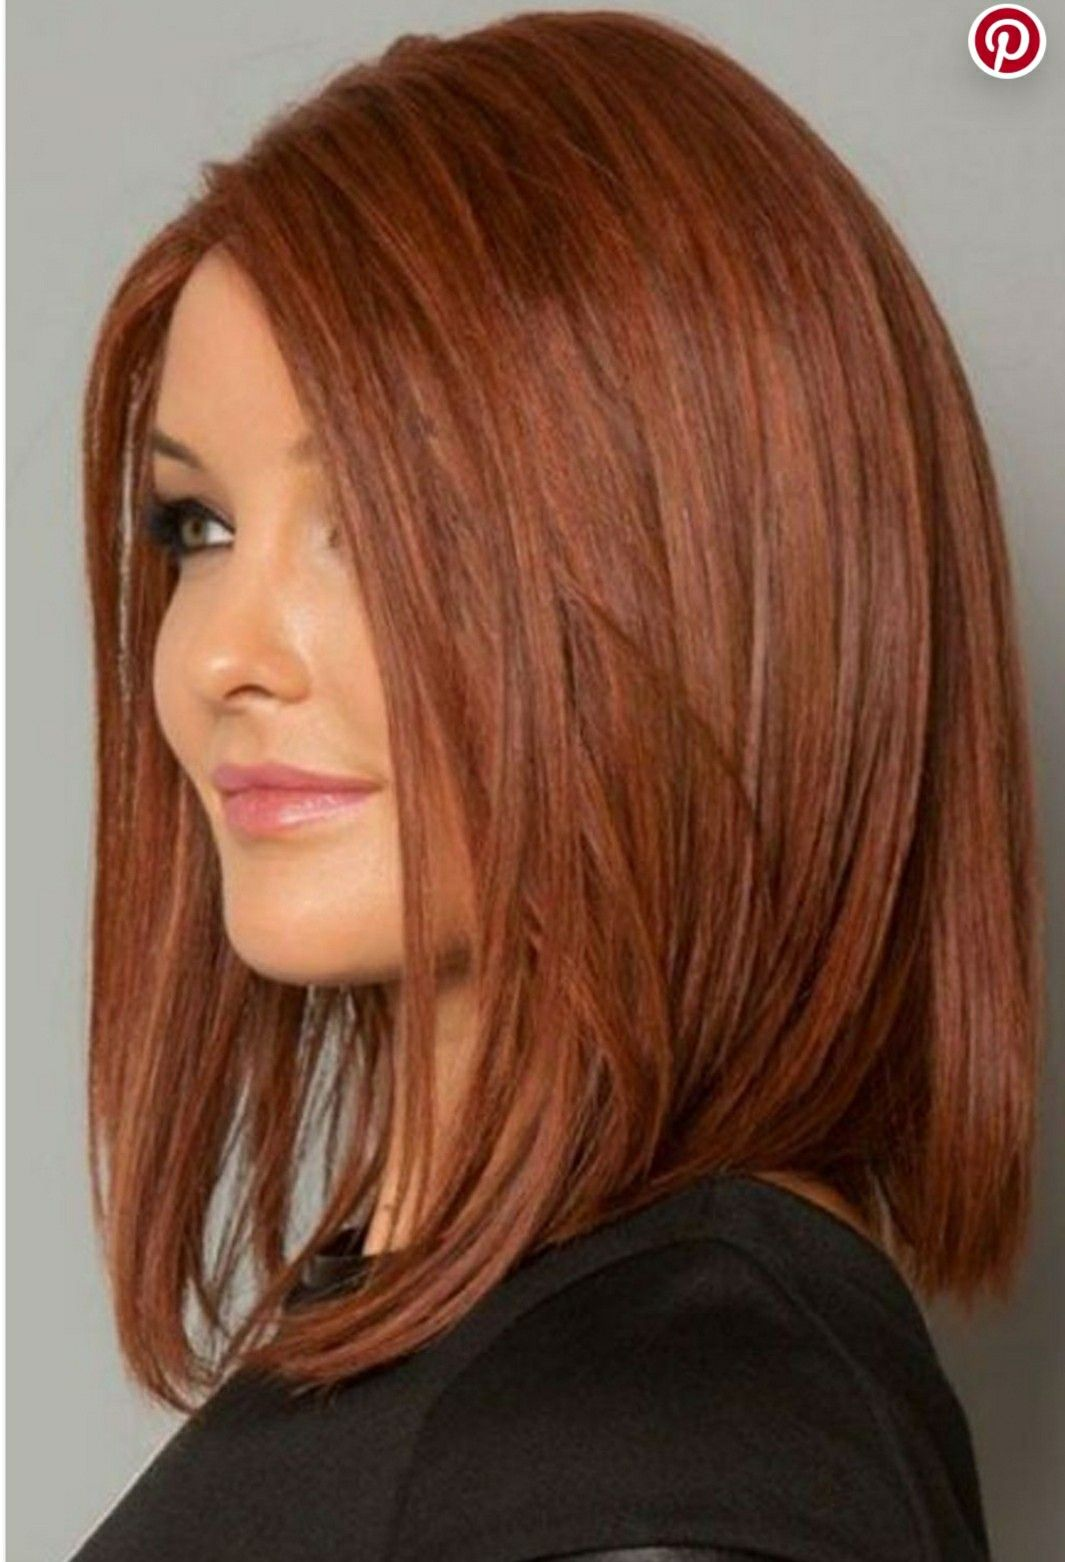 Pin By Natacha Kapuszinski On Carre Degrade In 2020 Long Hair Styles Long Face Hairstyles Hair Styles